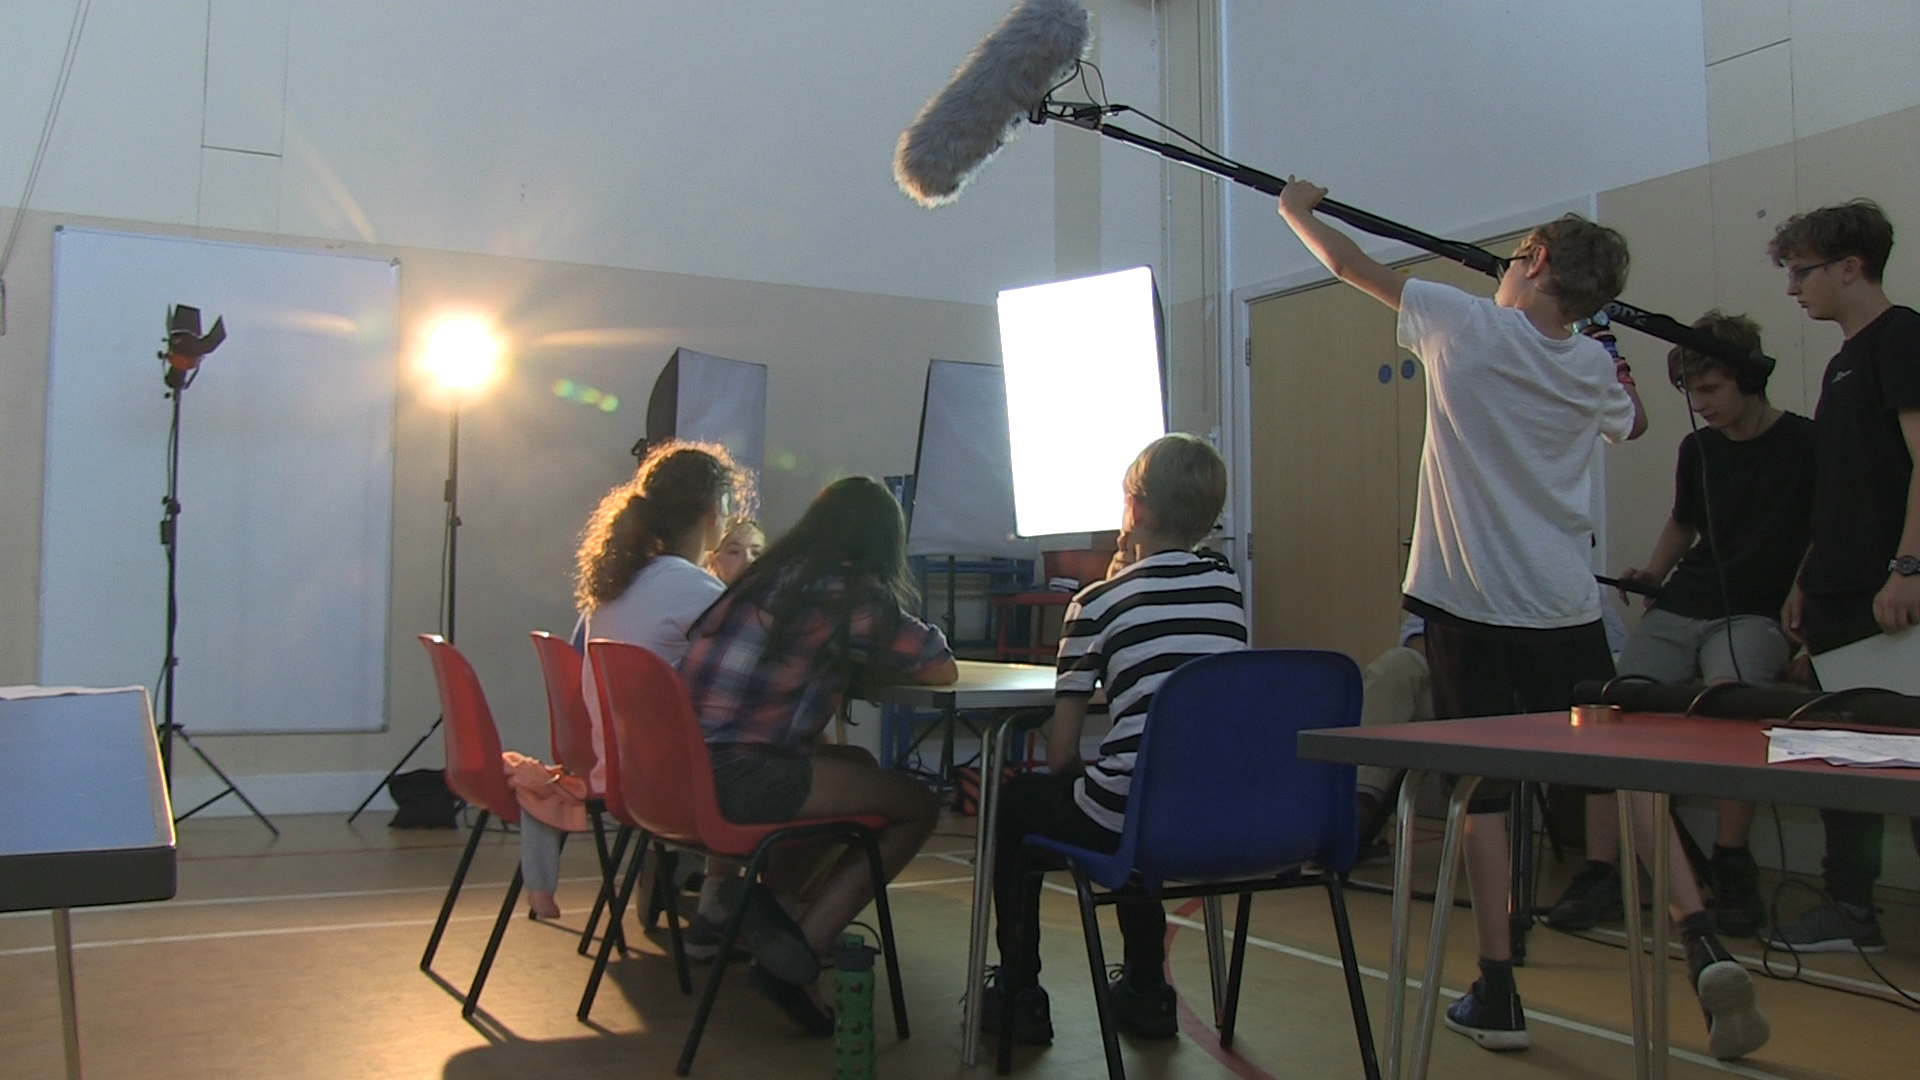 KID'S FILM MAKING SUMMER CAMP camp mentored by Clive Martin